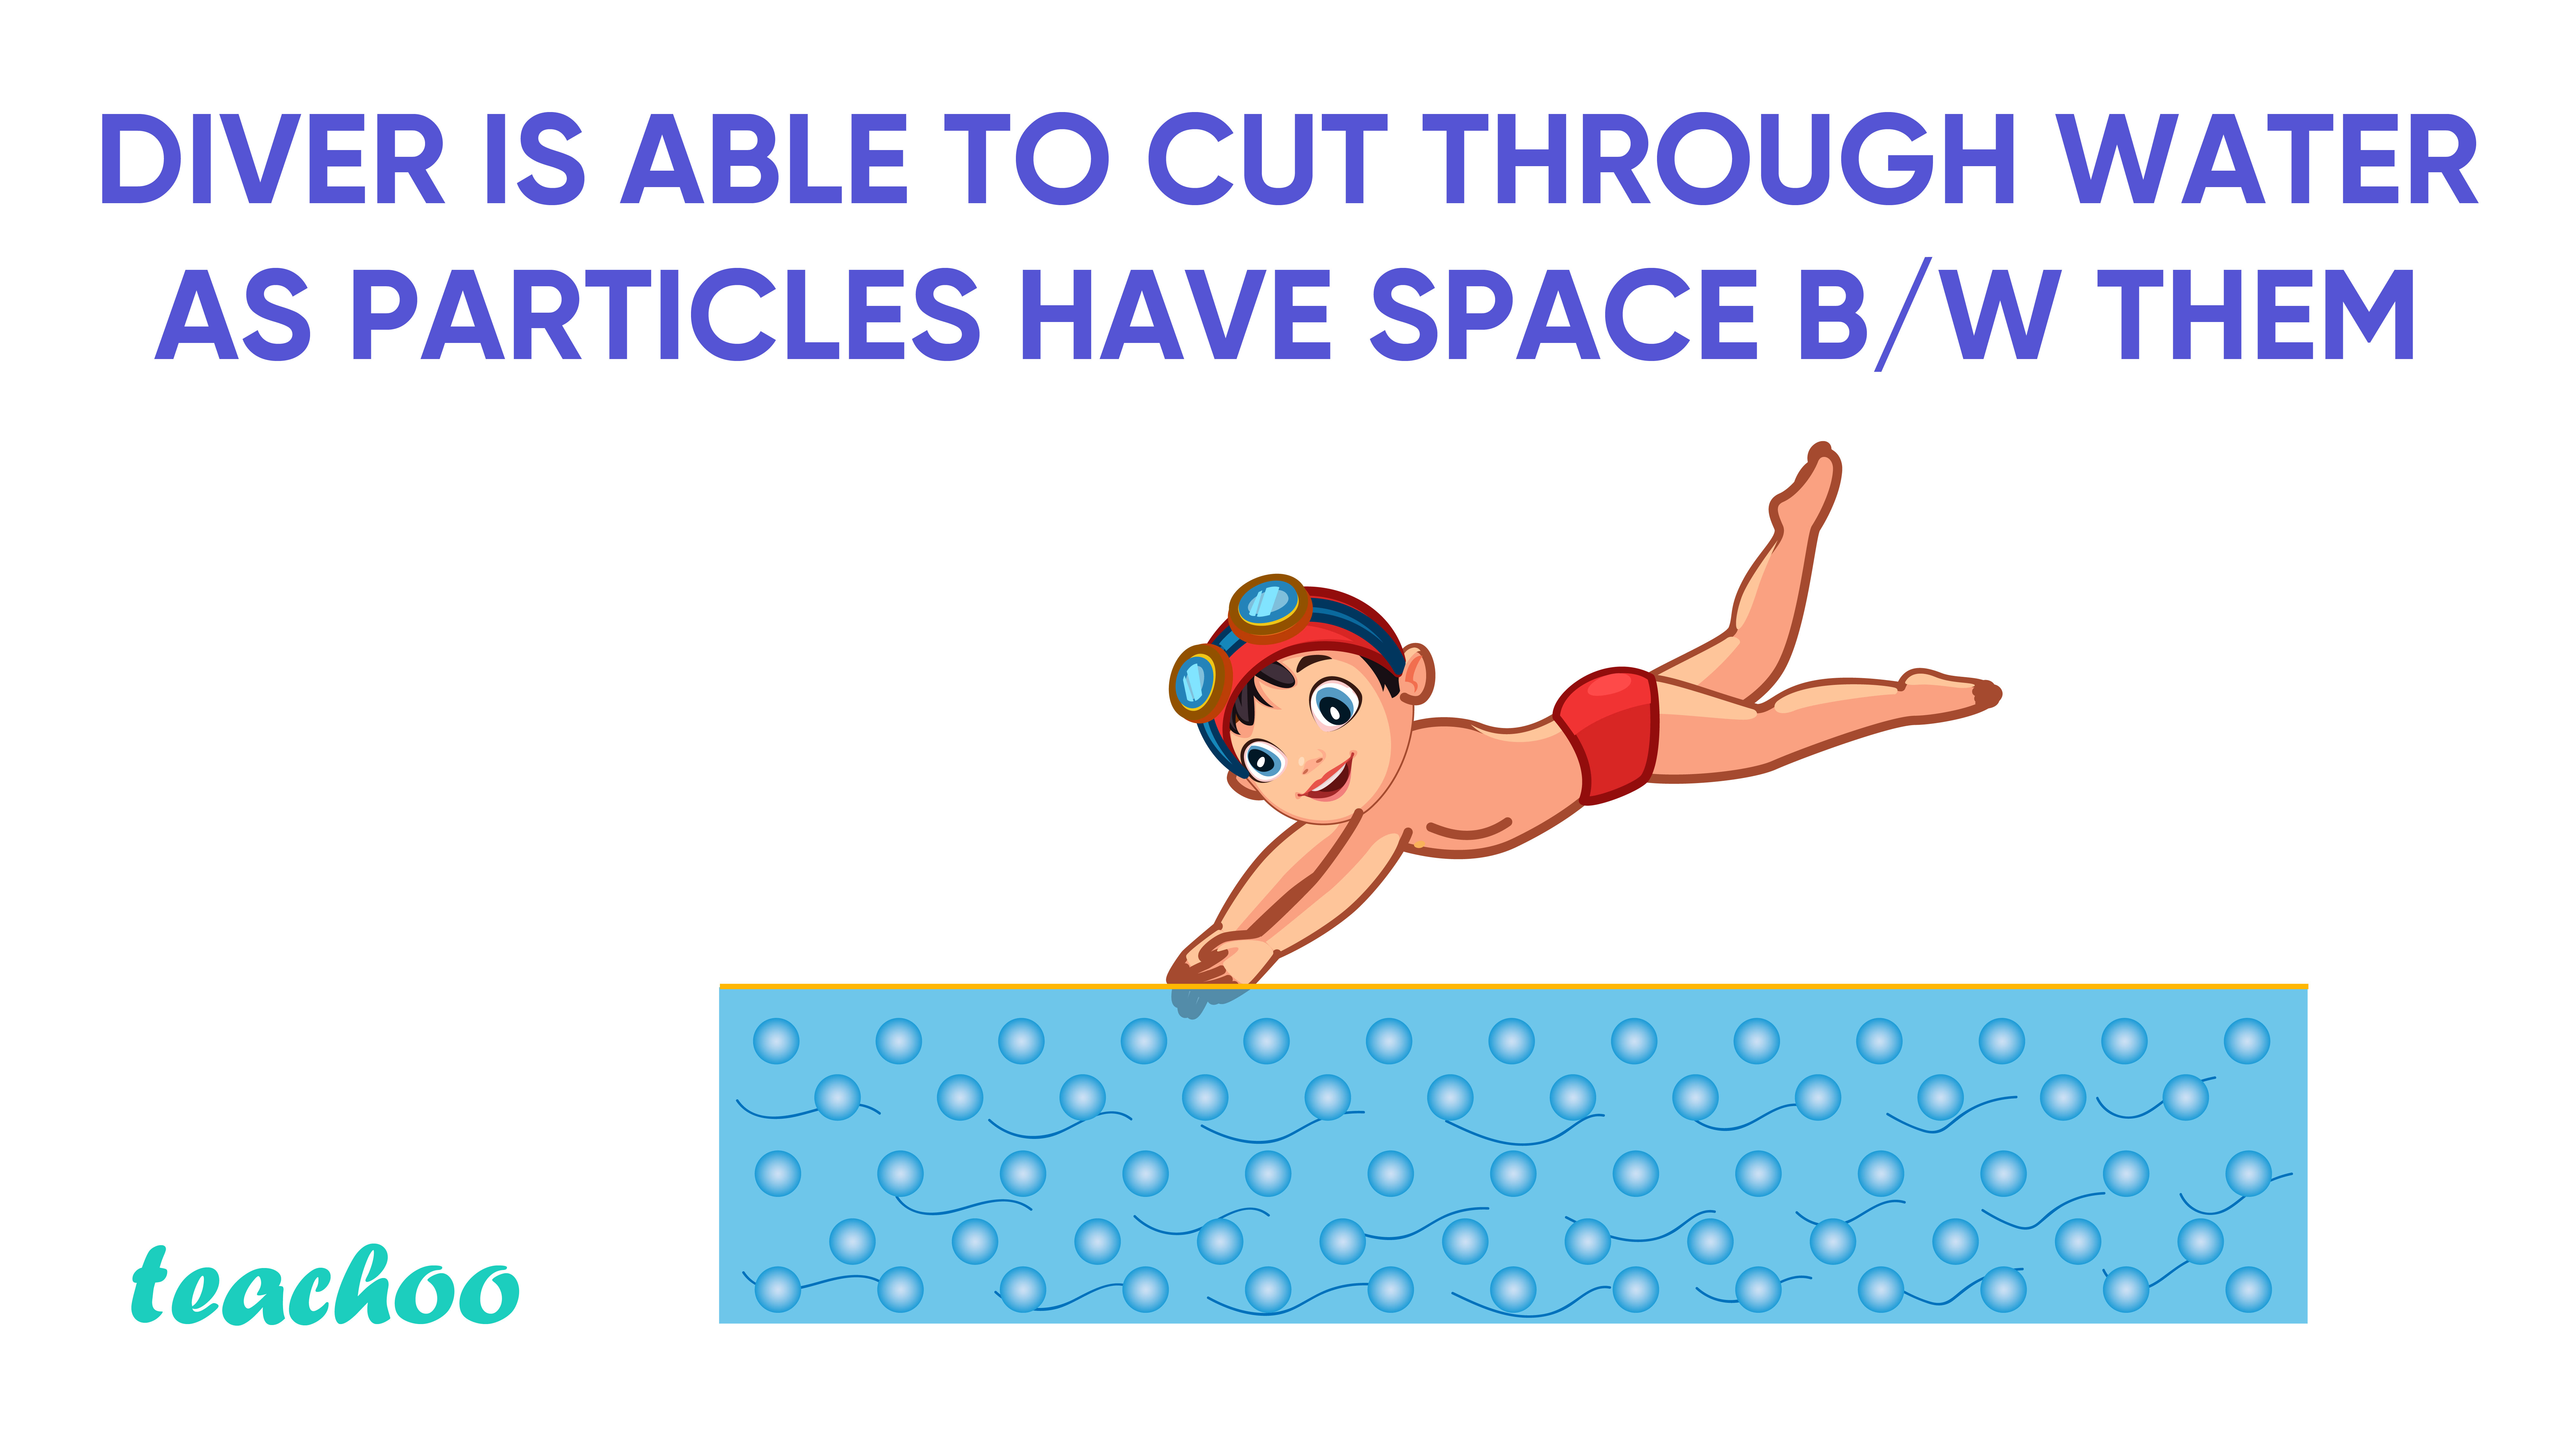 Diver is able to cut through water as particles have space between them- Teachoo-01.jpg